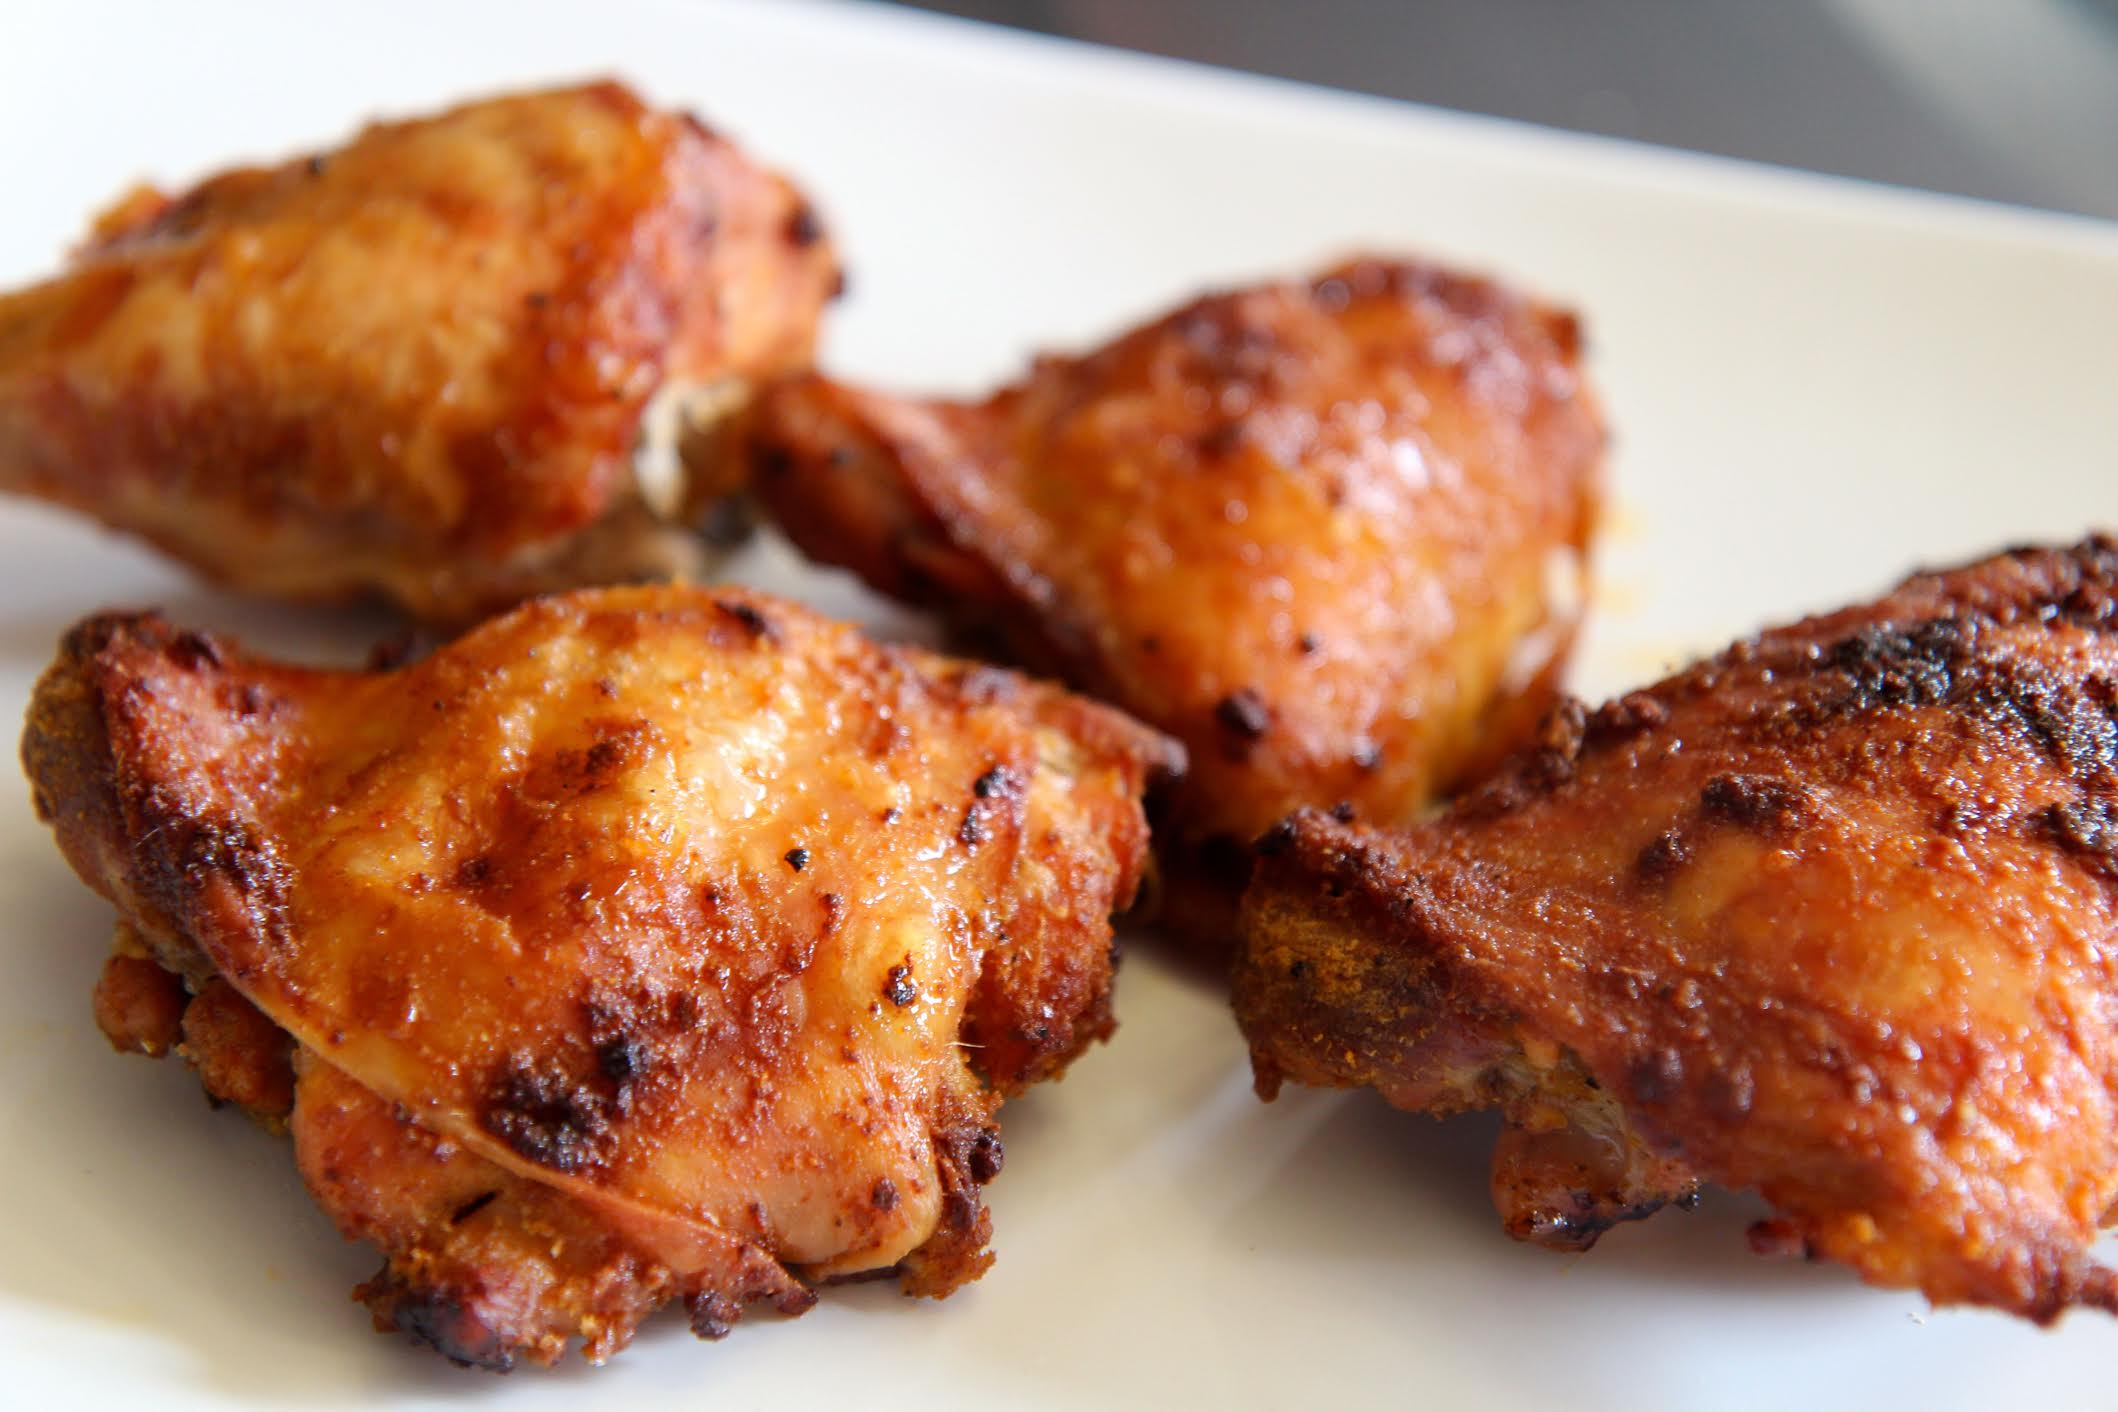 This smoked paprika chicken recipe gives a little bit of a kick and a lot of great flavor